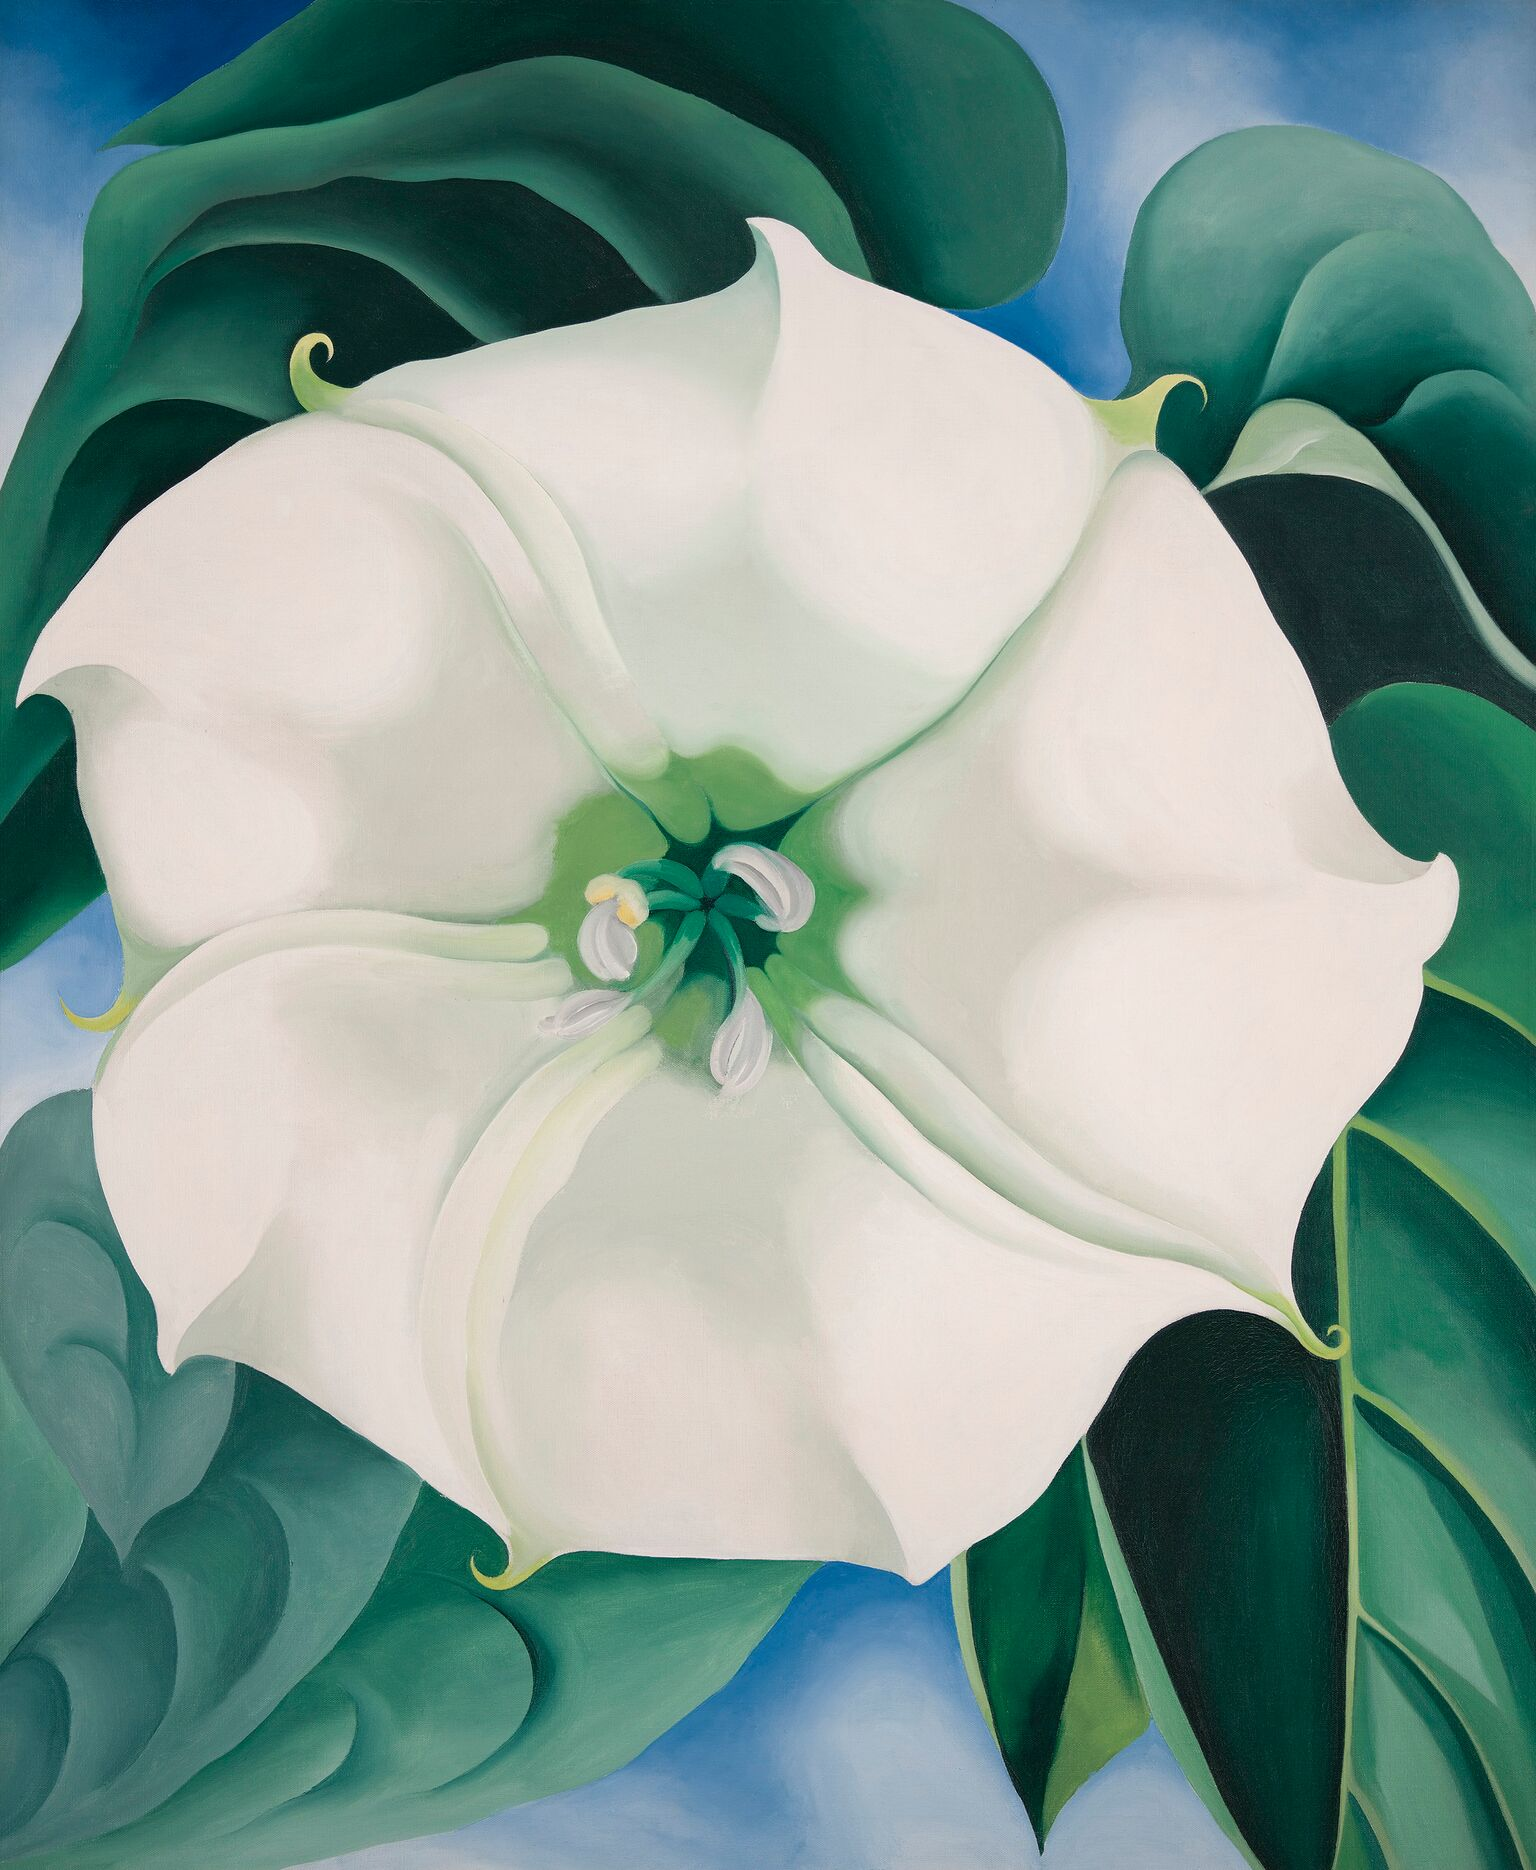 Georgia O'Keeffe 1887-1986 Jimson Weed/White Flower No. 1 1932 Oil paint on canvas 48 x 40 inches Crystal Bridges Museum of American Art, Arkansas, USA Photography by Edward C. Robison III © 2016 Georgia O'Keeffe Museum/DACS, London